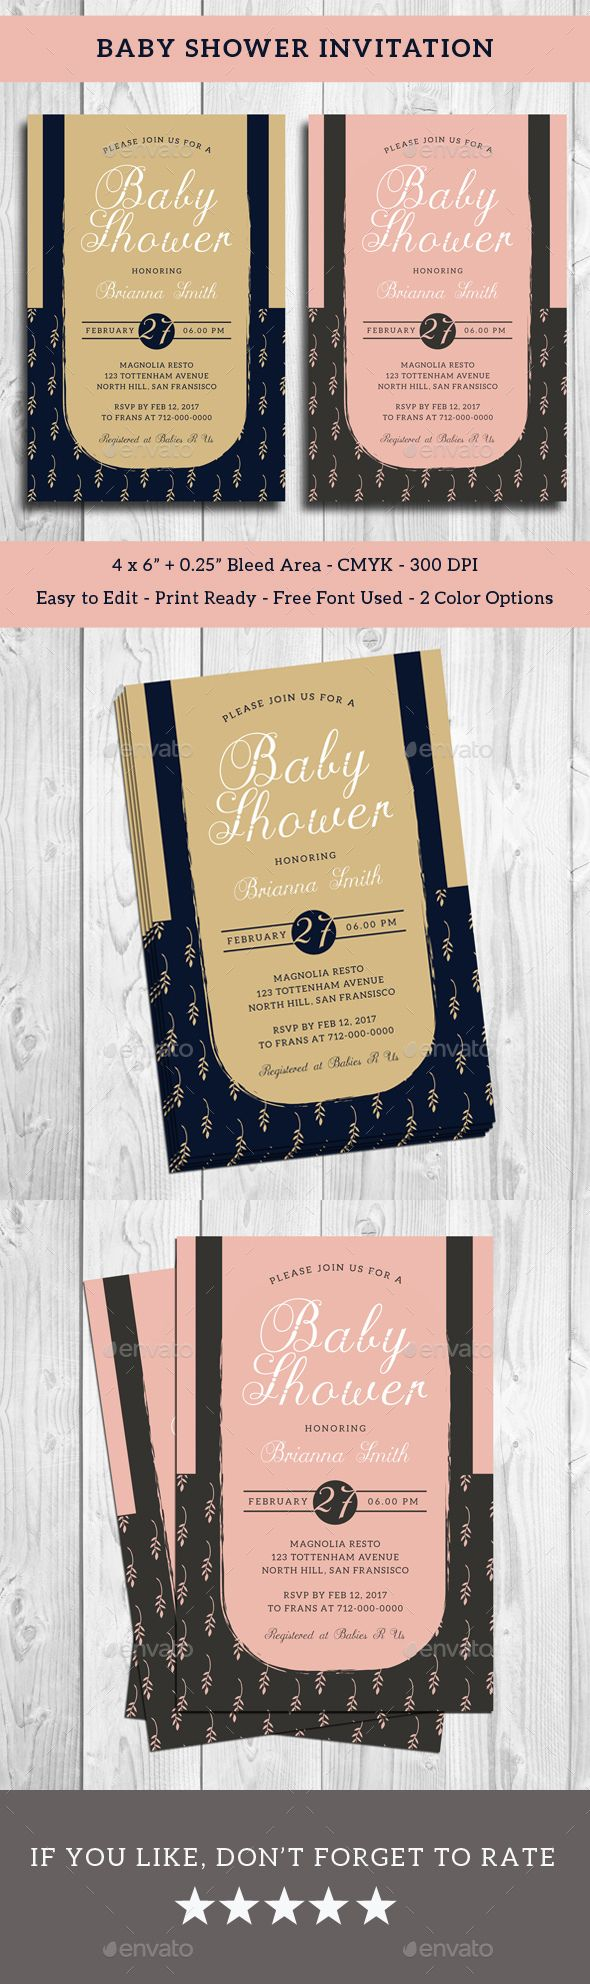 best images about card  invite design templates on, invitation samples